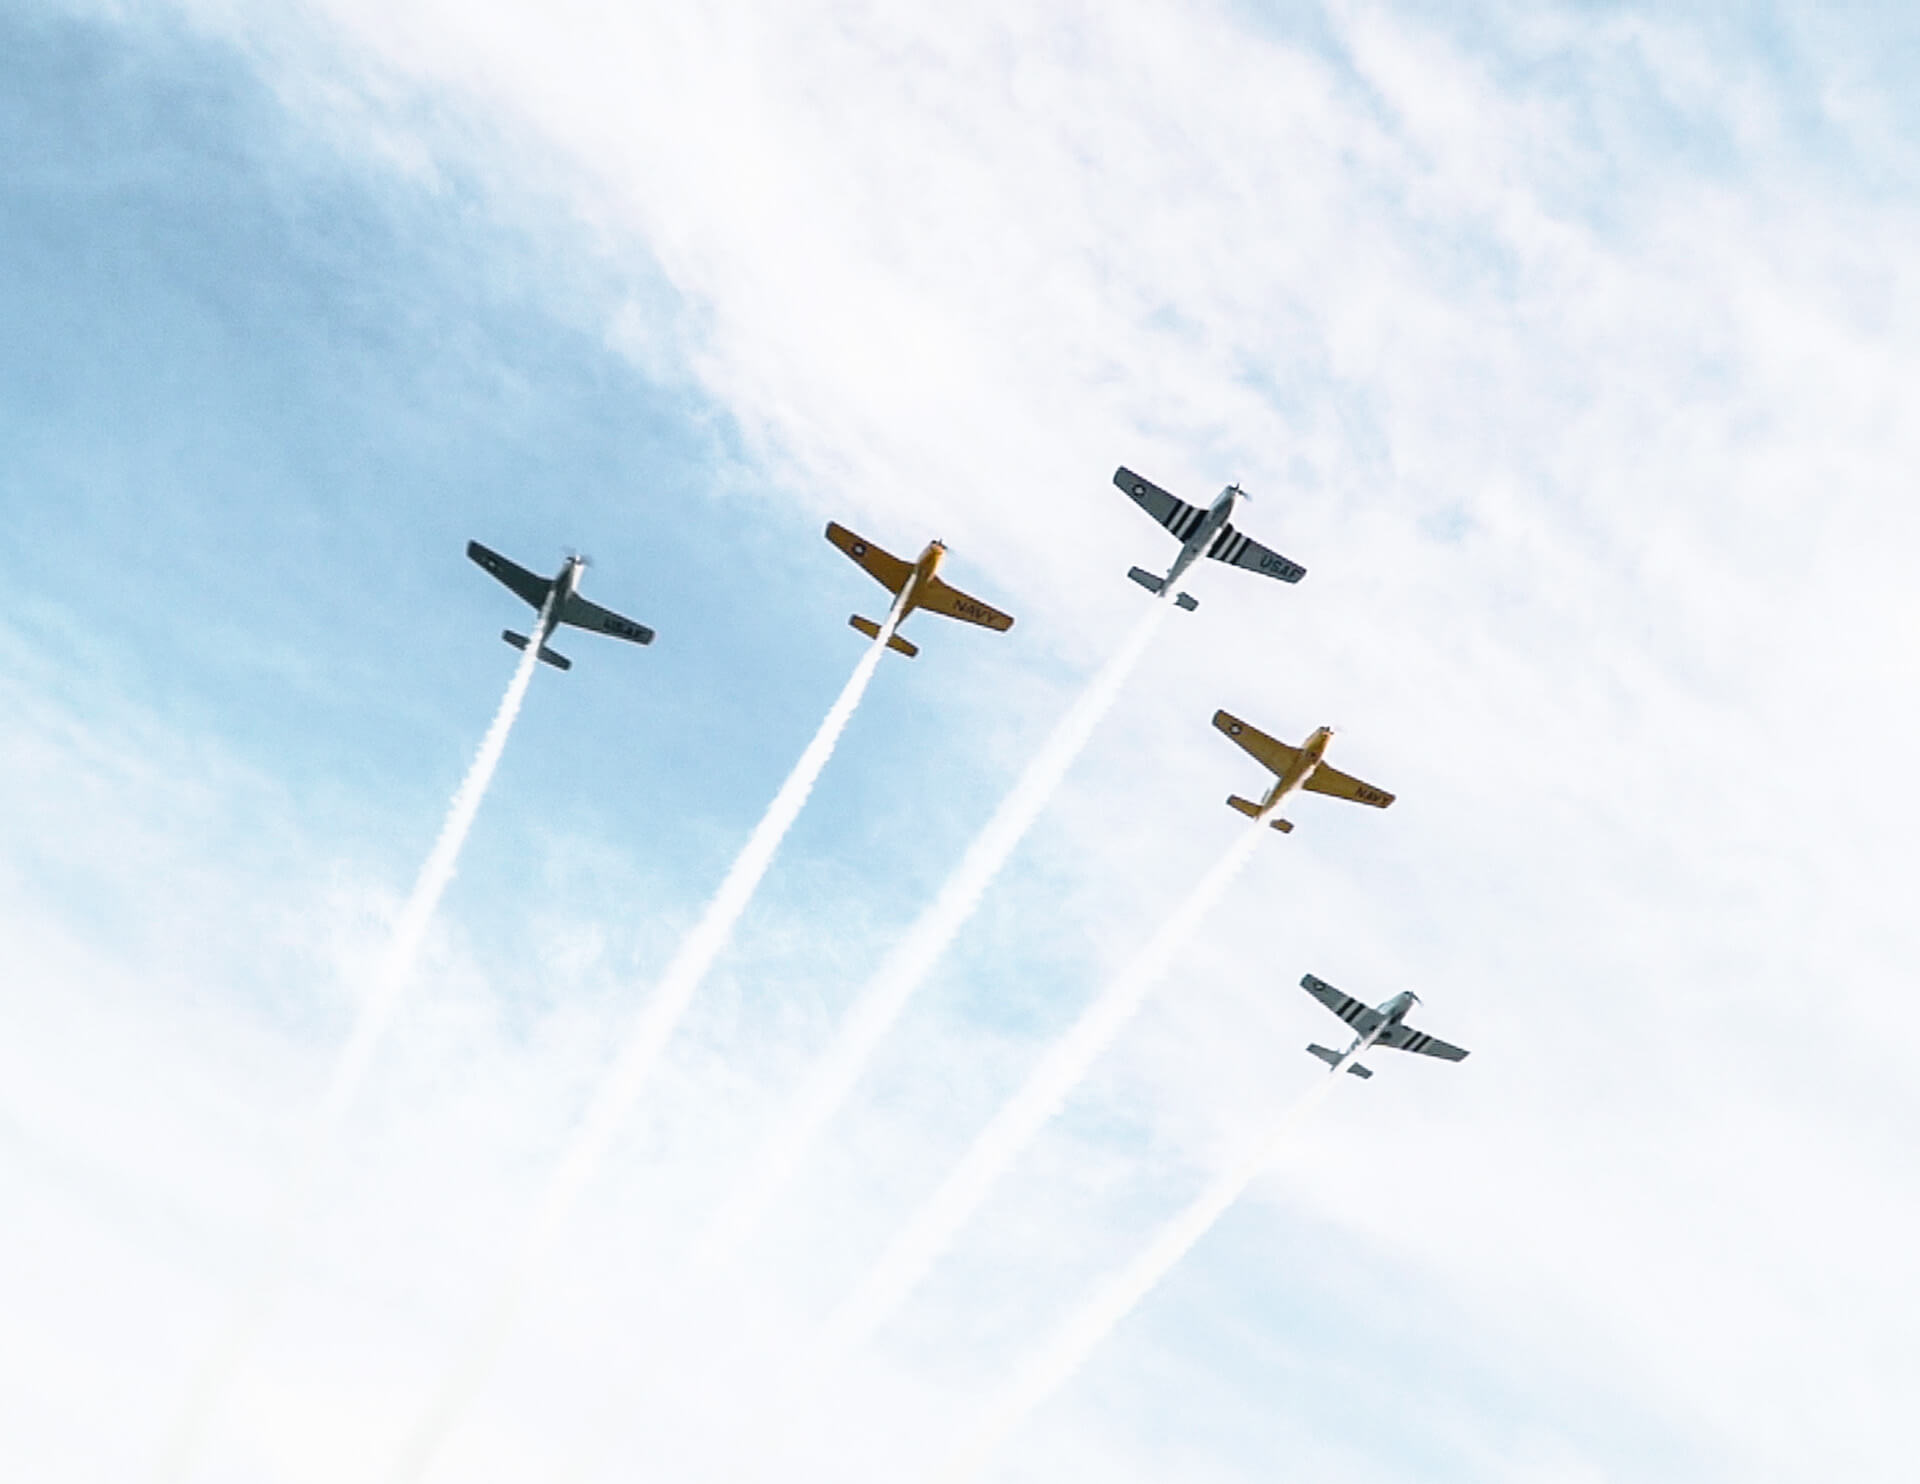 A military flyover finalized the pre-race ceremonies at the 2019 Night Under Fire.